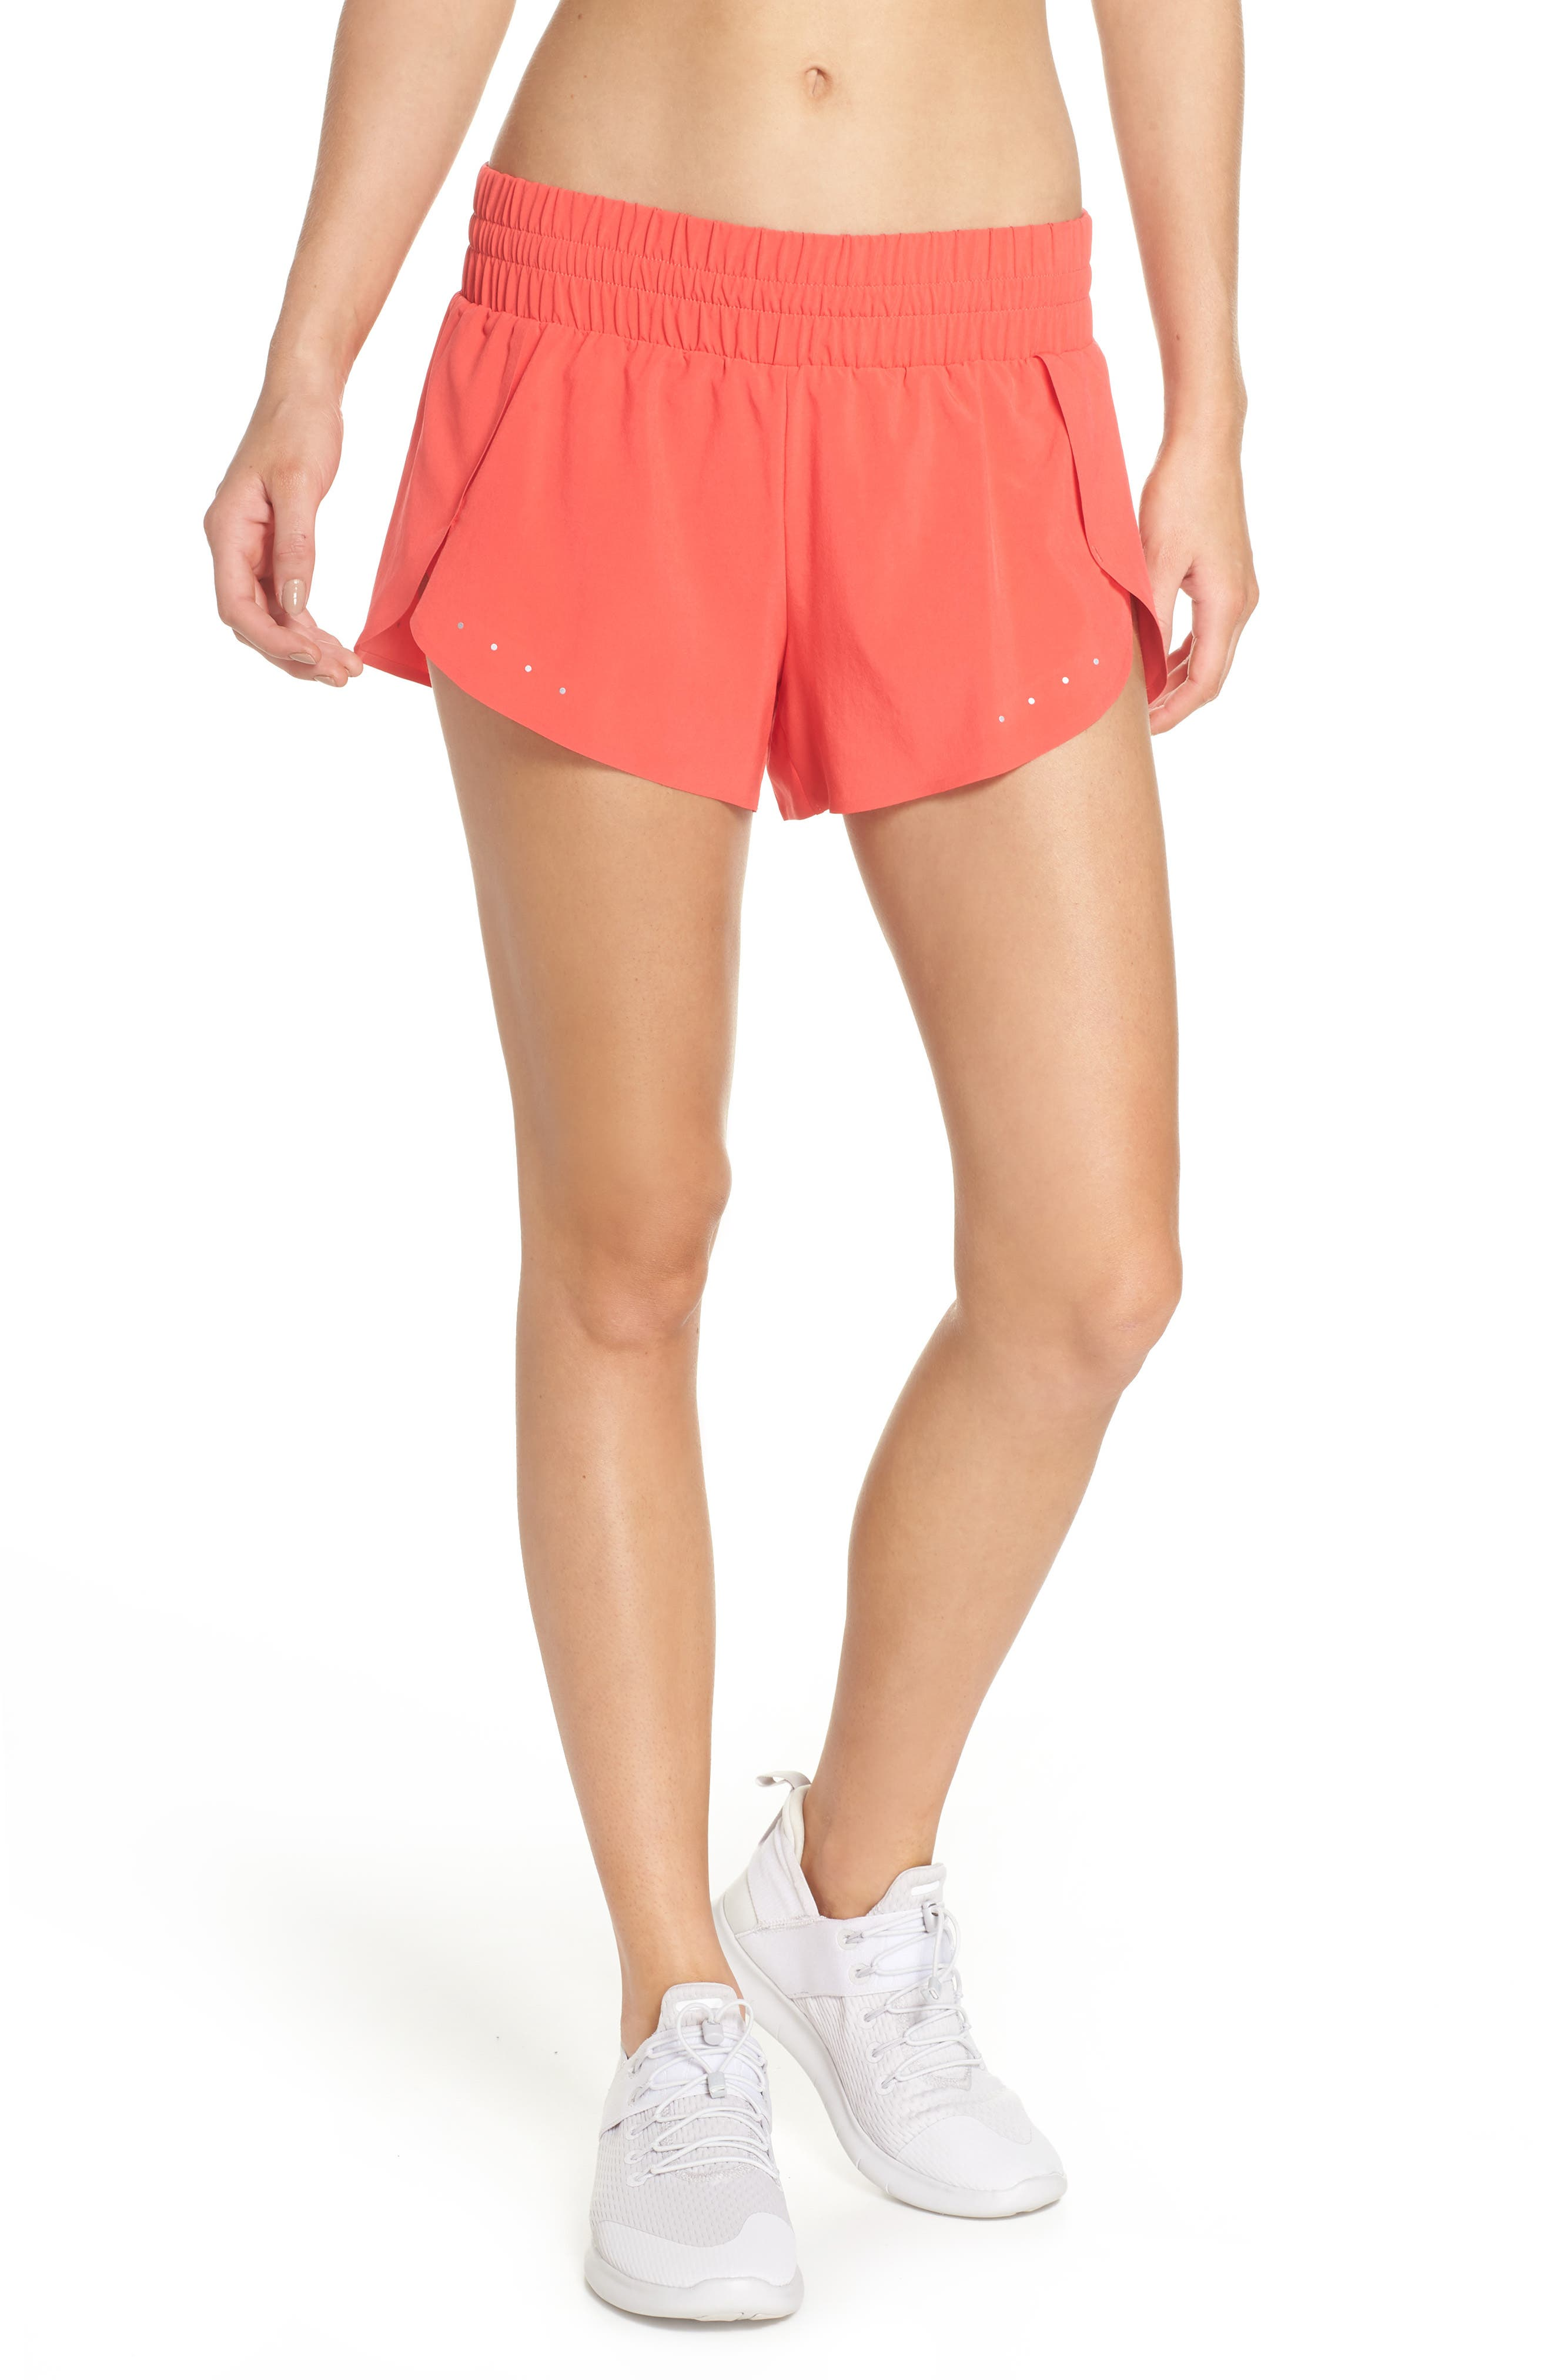 Run Play Shorts,                         Main,                         color, Red Hibiscus